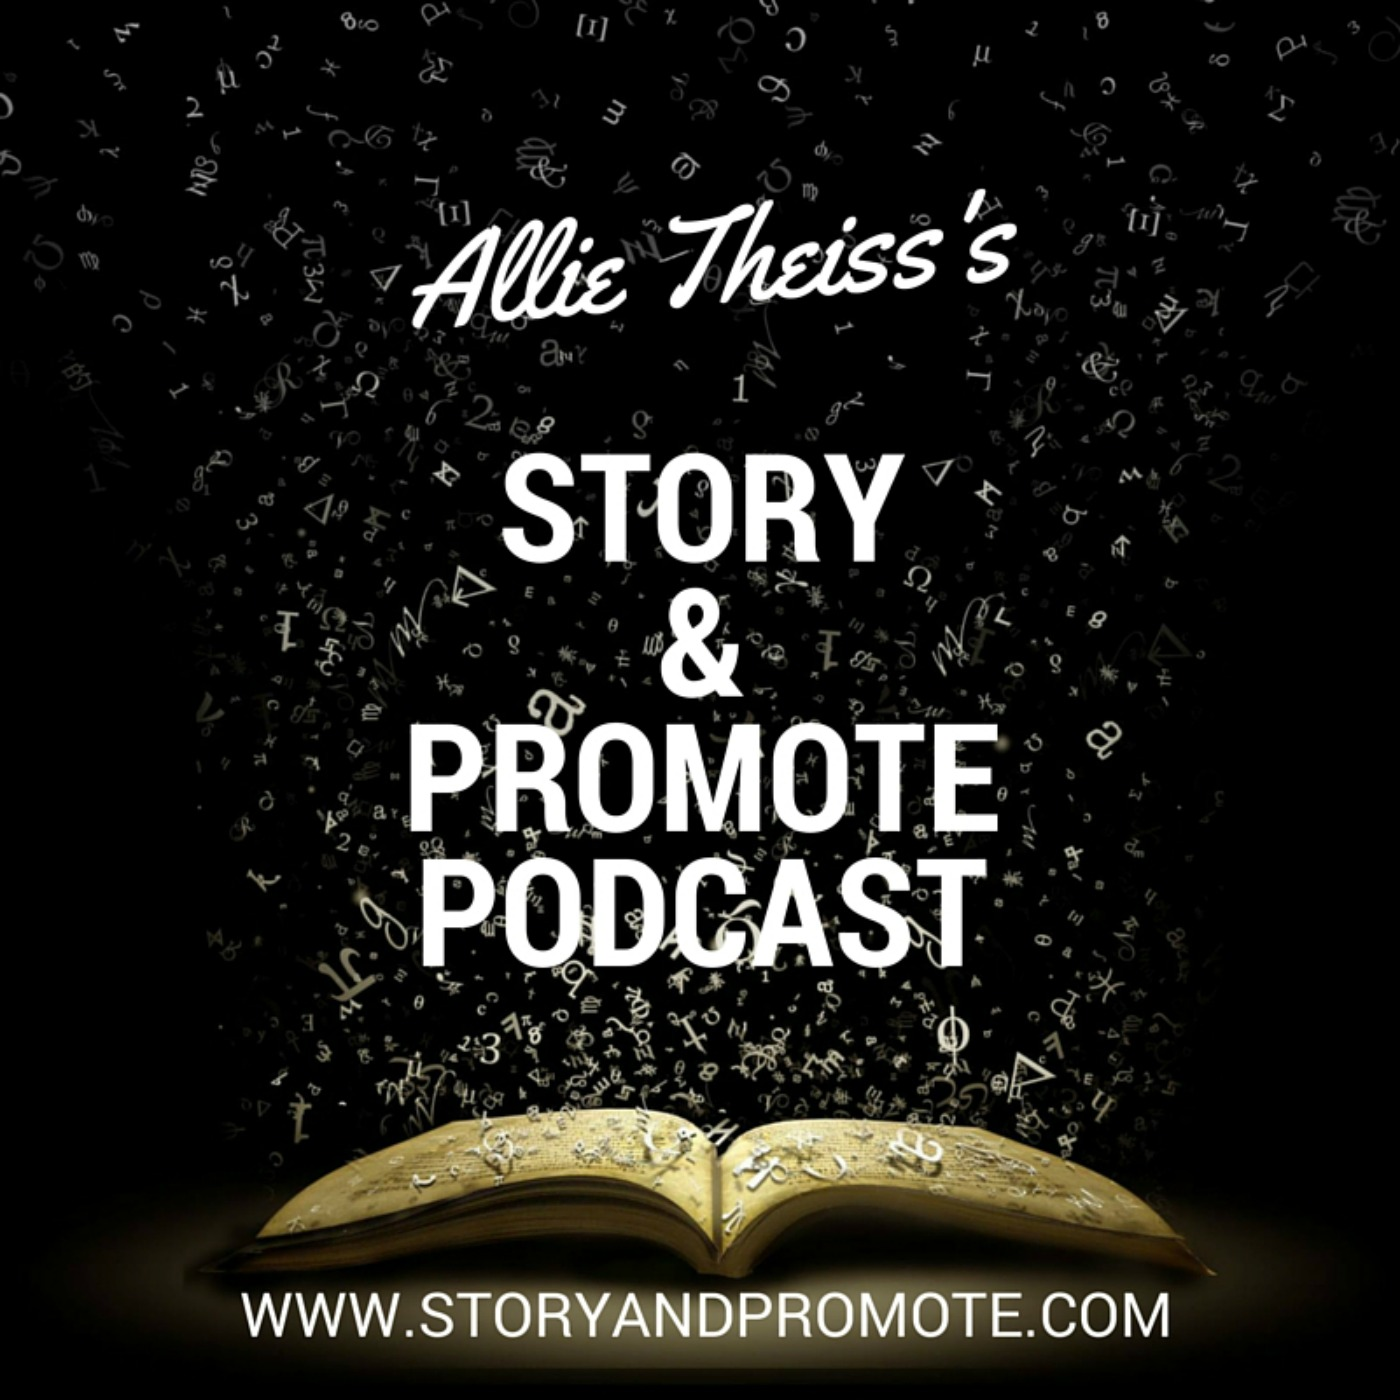 Story & Promote Podcast: Give Your Characters Unique Character Traits